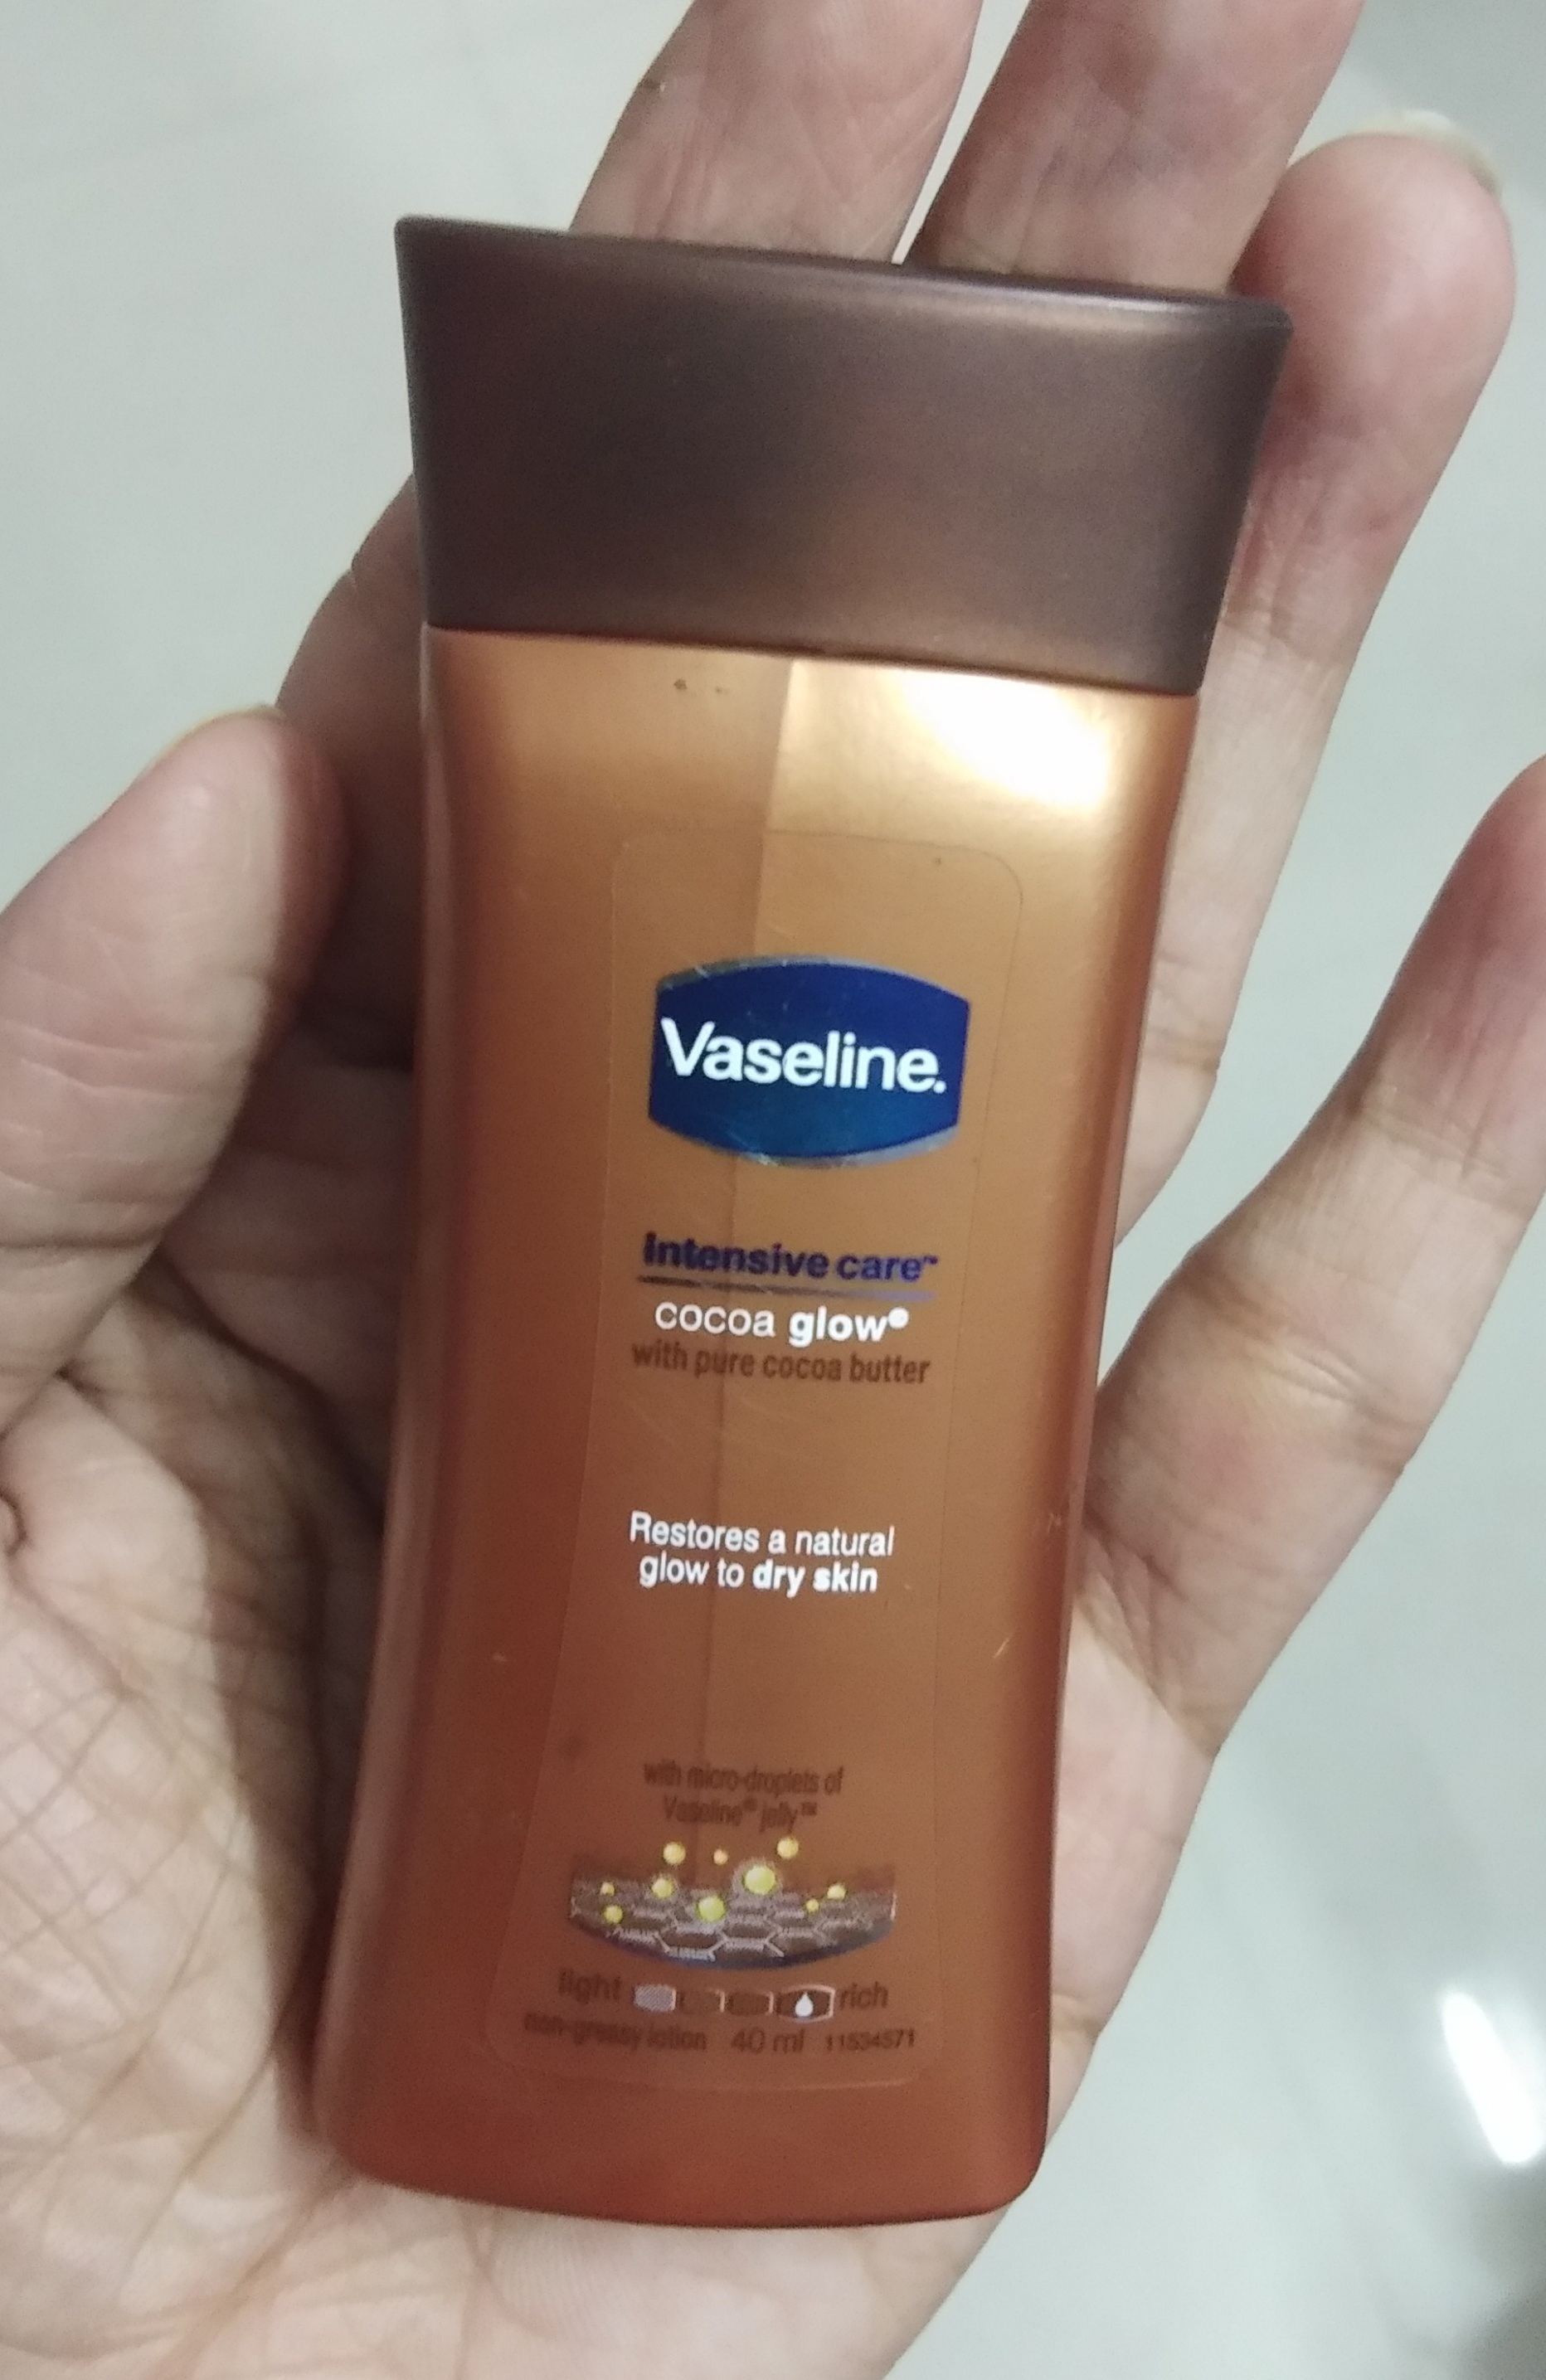 Vaseline Intensive Care Cocoa Glow Body Lotion-Love it-By Nasreen-2